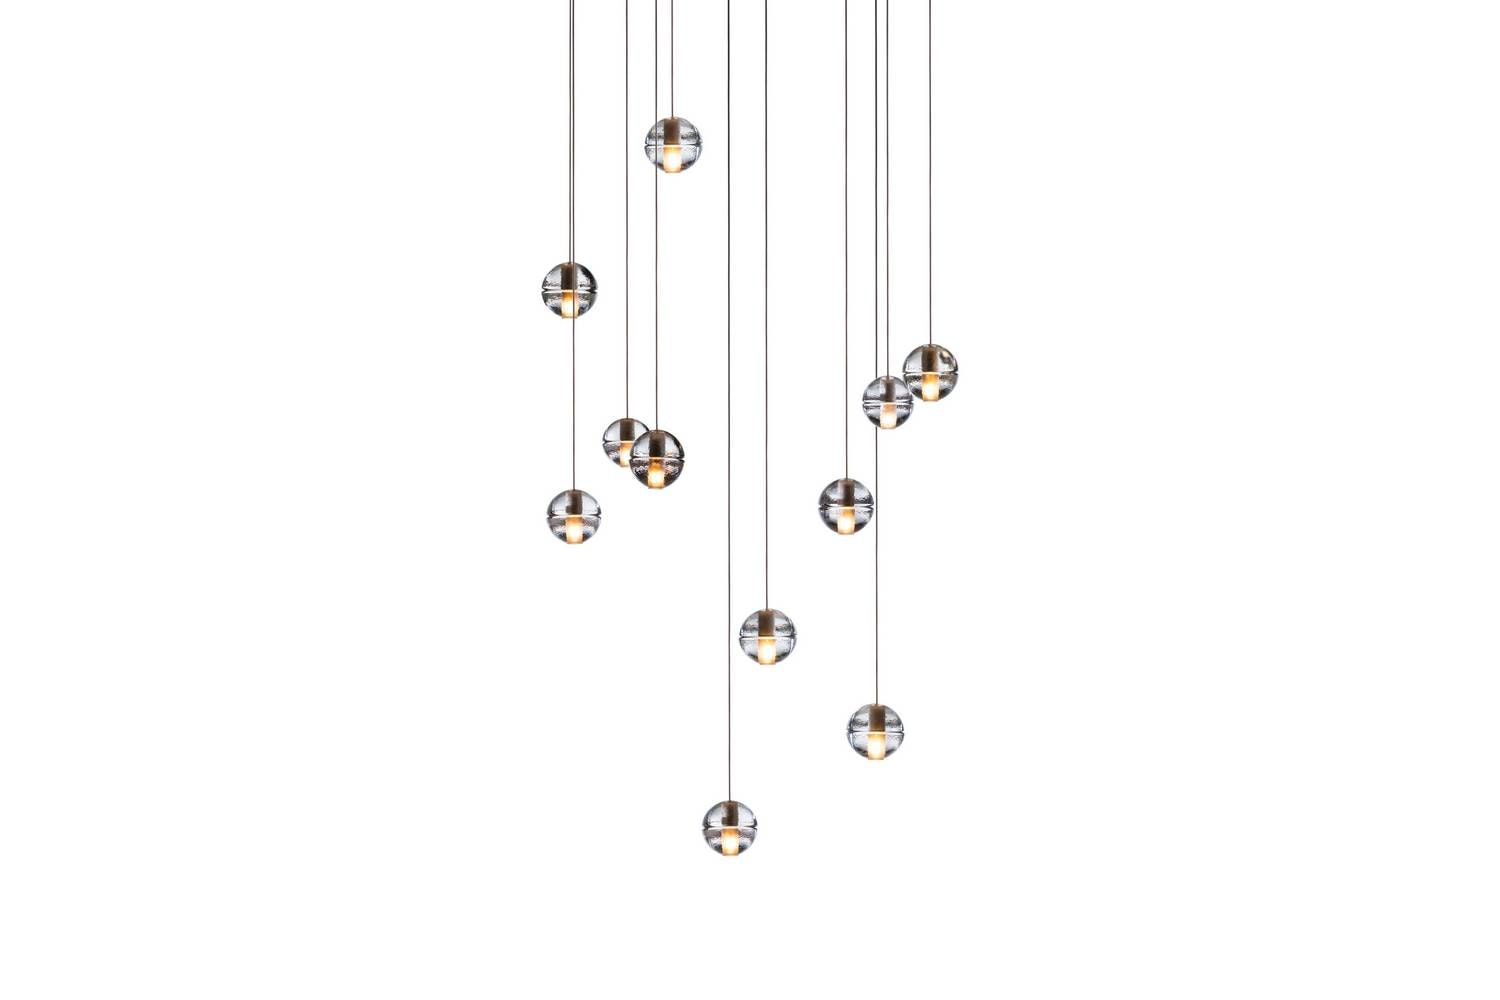 14.11 Standard Suspension Lamp by Omer Arbel for Bocci